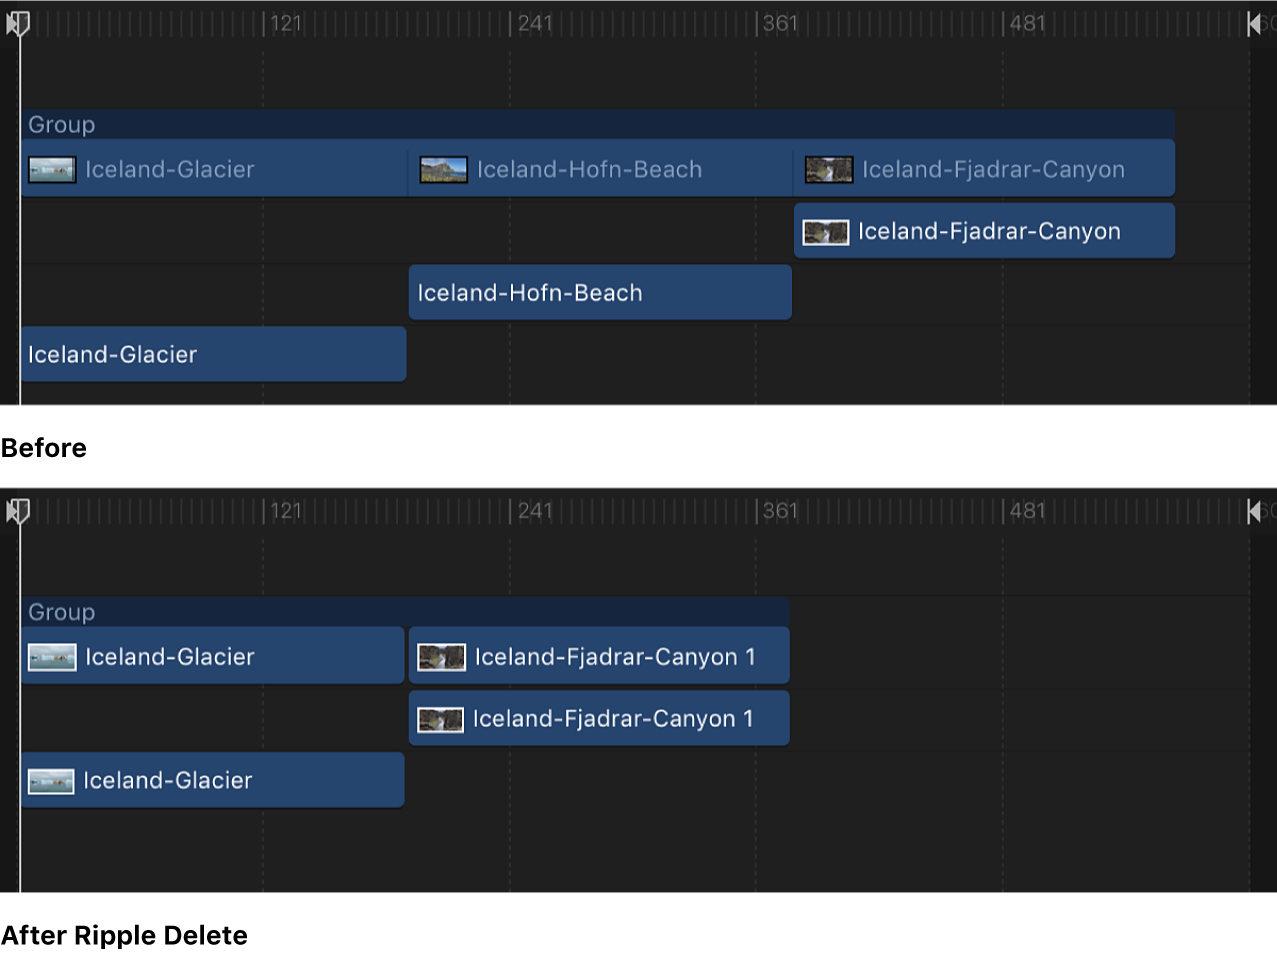 Timeline showing three objects, then one of the objects being ripple deleted